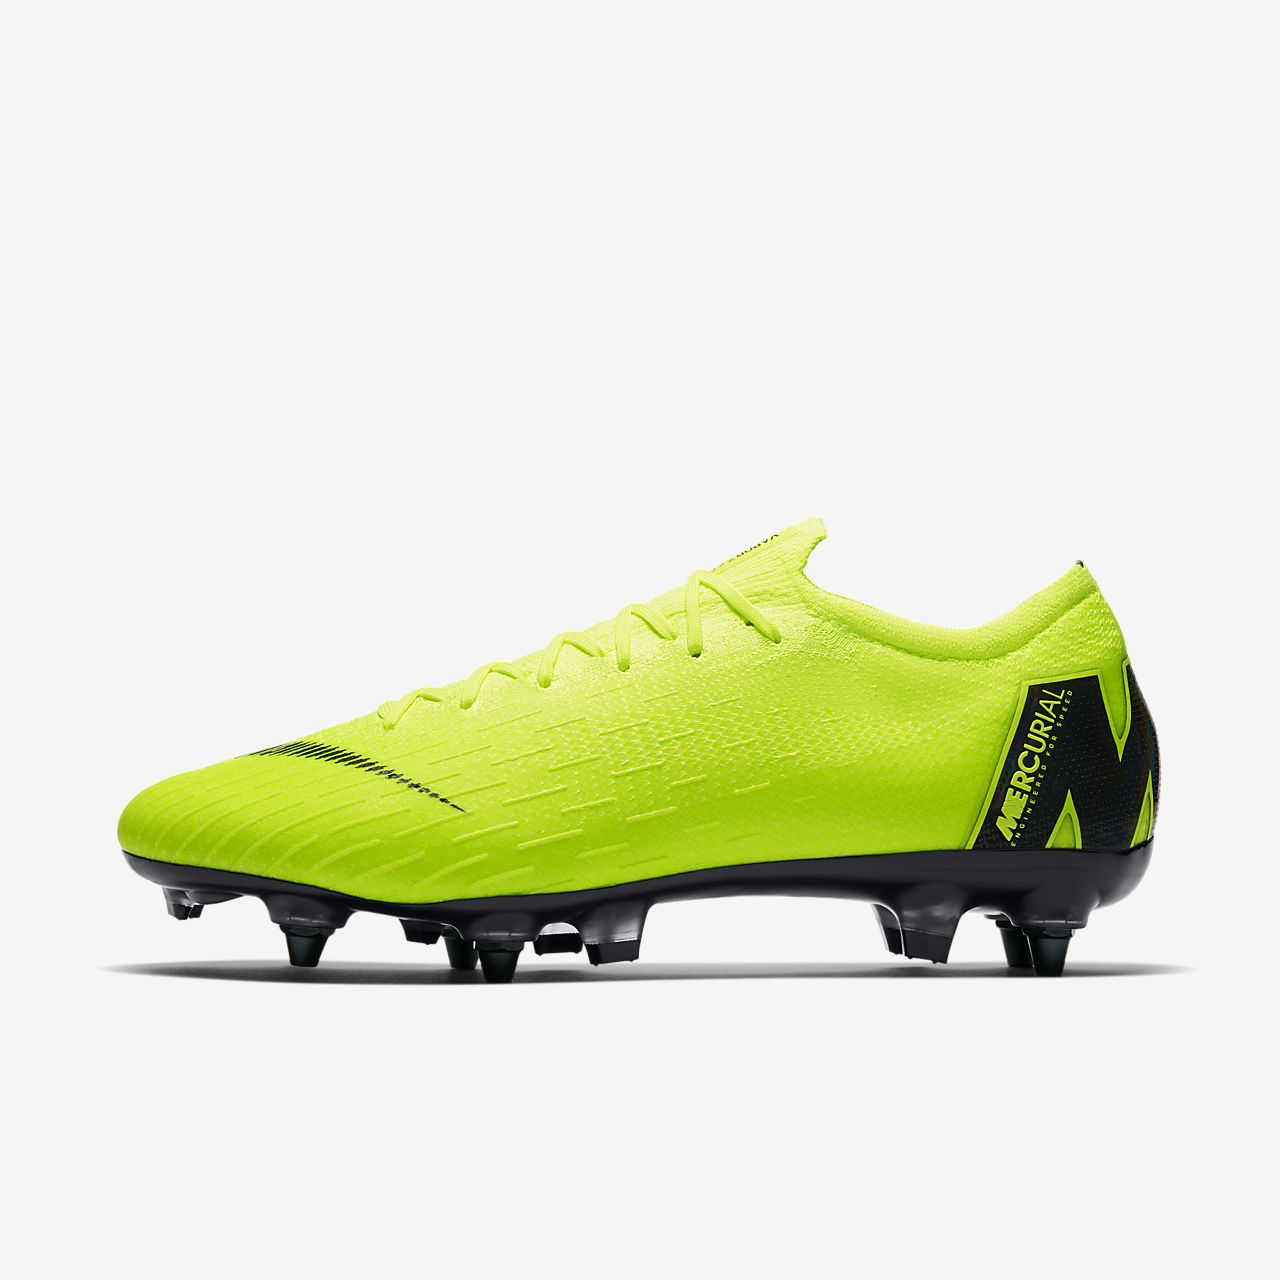 competitive price d6473 dff01 ... Nike Mercurial Vapor 360 Elite SG-PRO Anti-Clog Soft-Ground Football  Boot